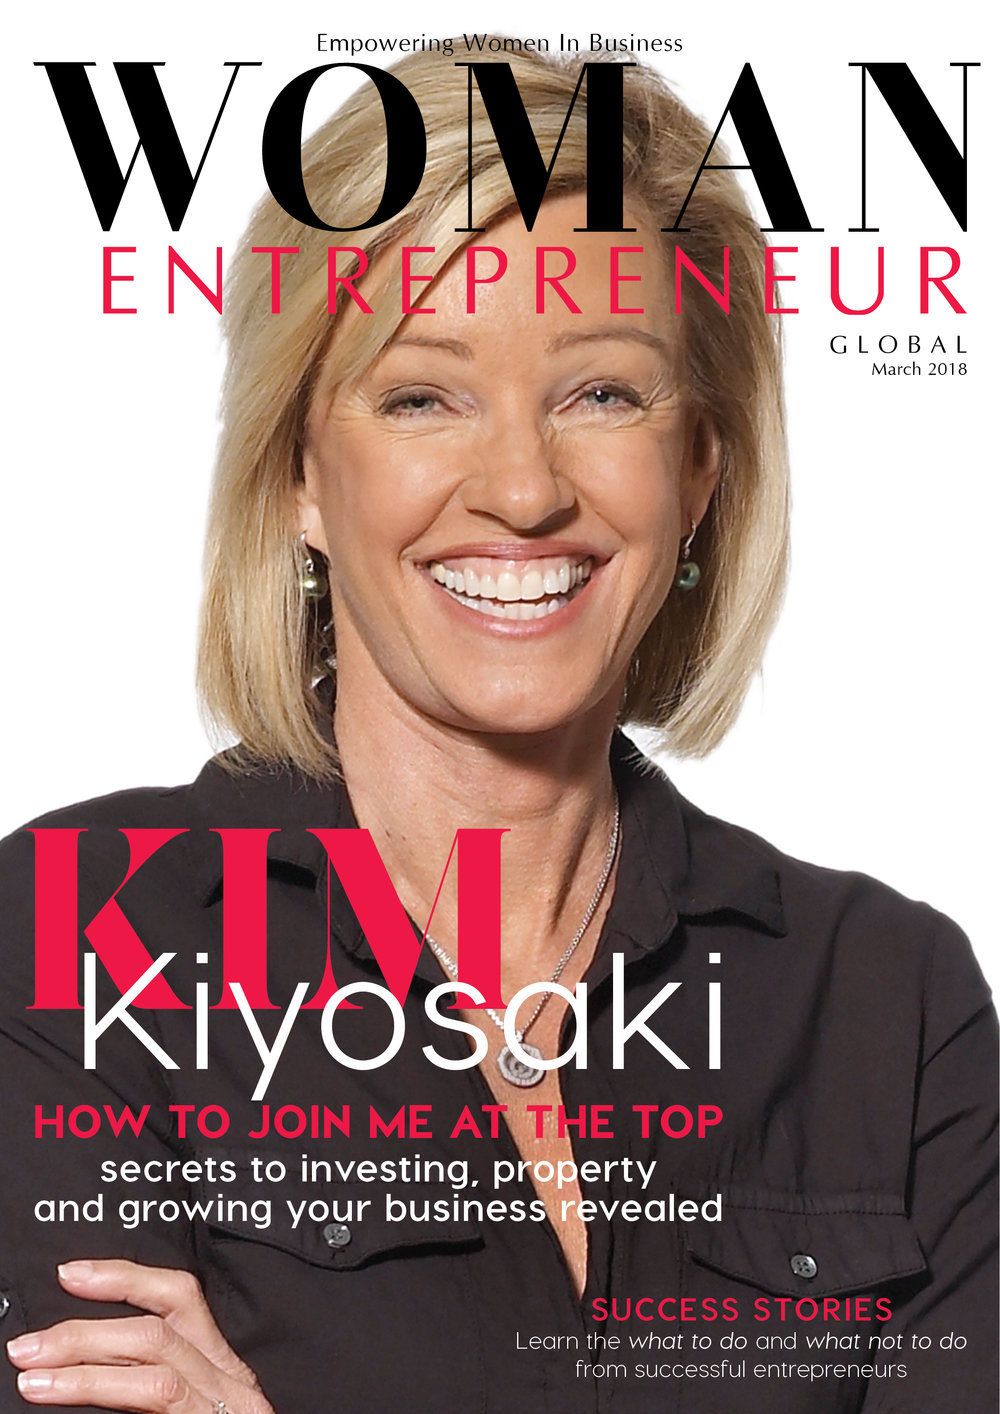 Kim Kiyosaki on Woman Entrepreneur Magazine Cover.jpg